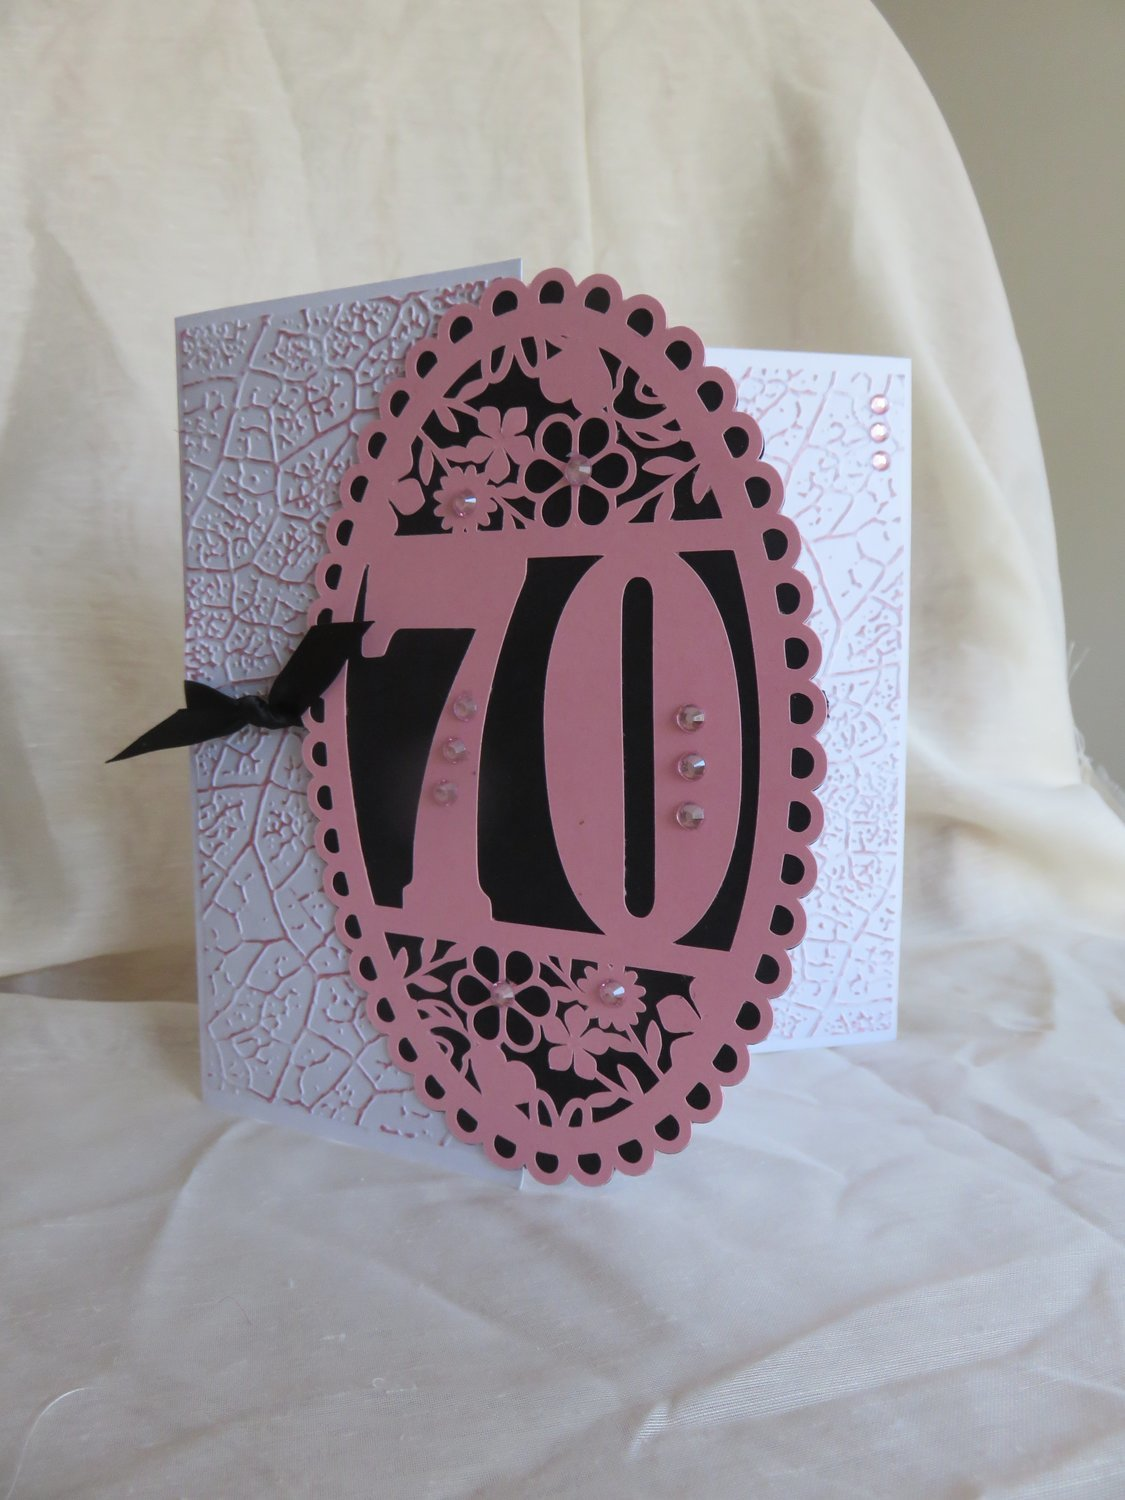 70th Birthday oval card topper - studio.